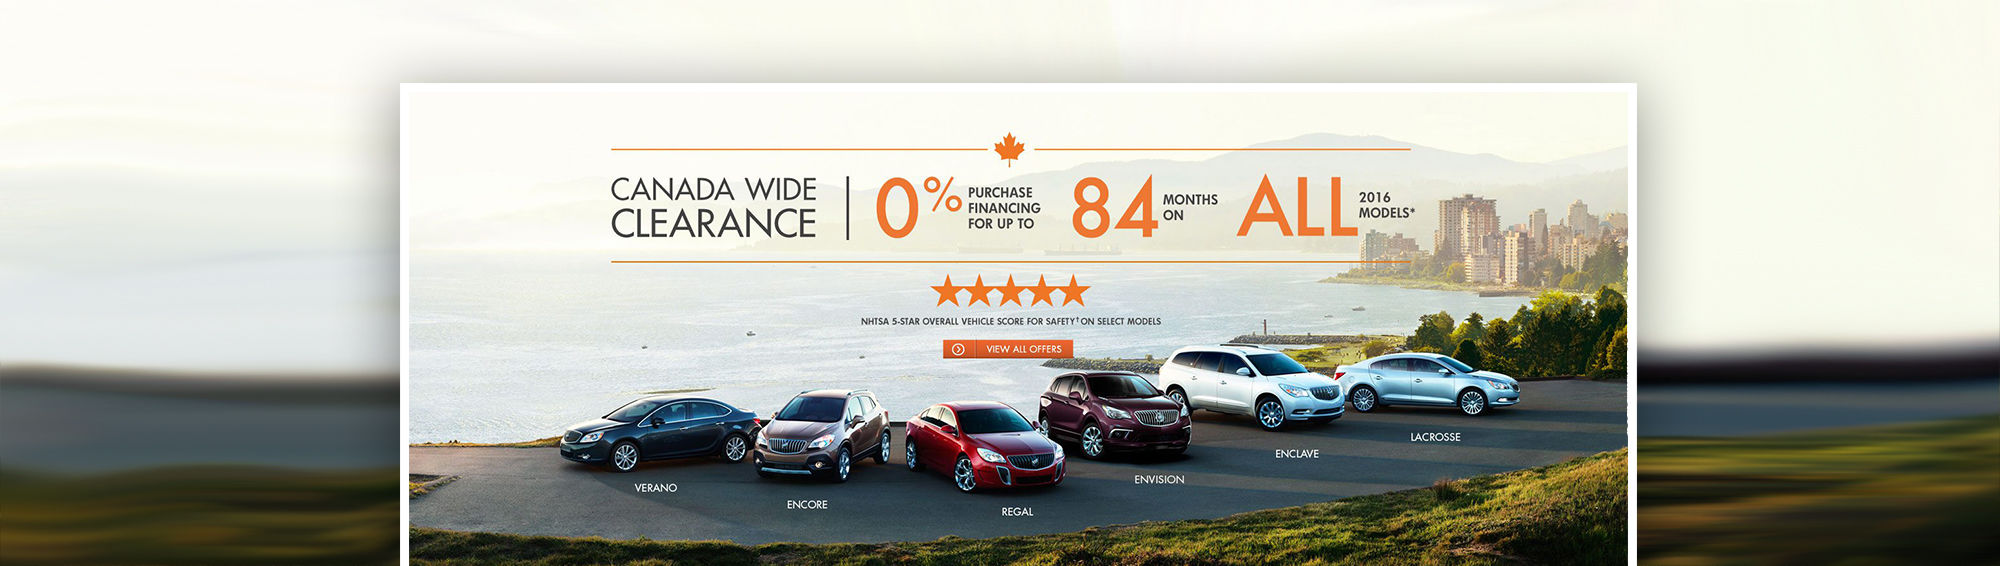 Buick 2016 Canada Wide Clearance